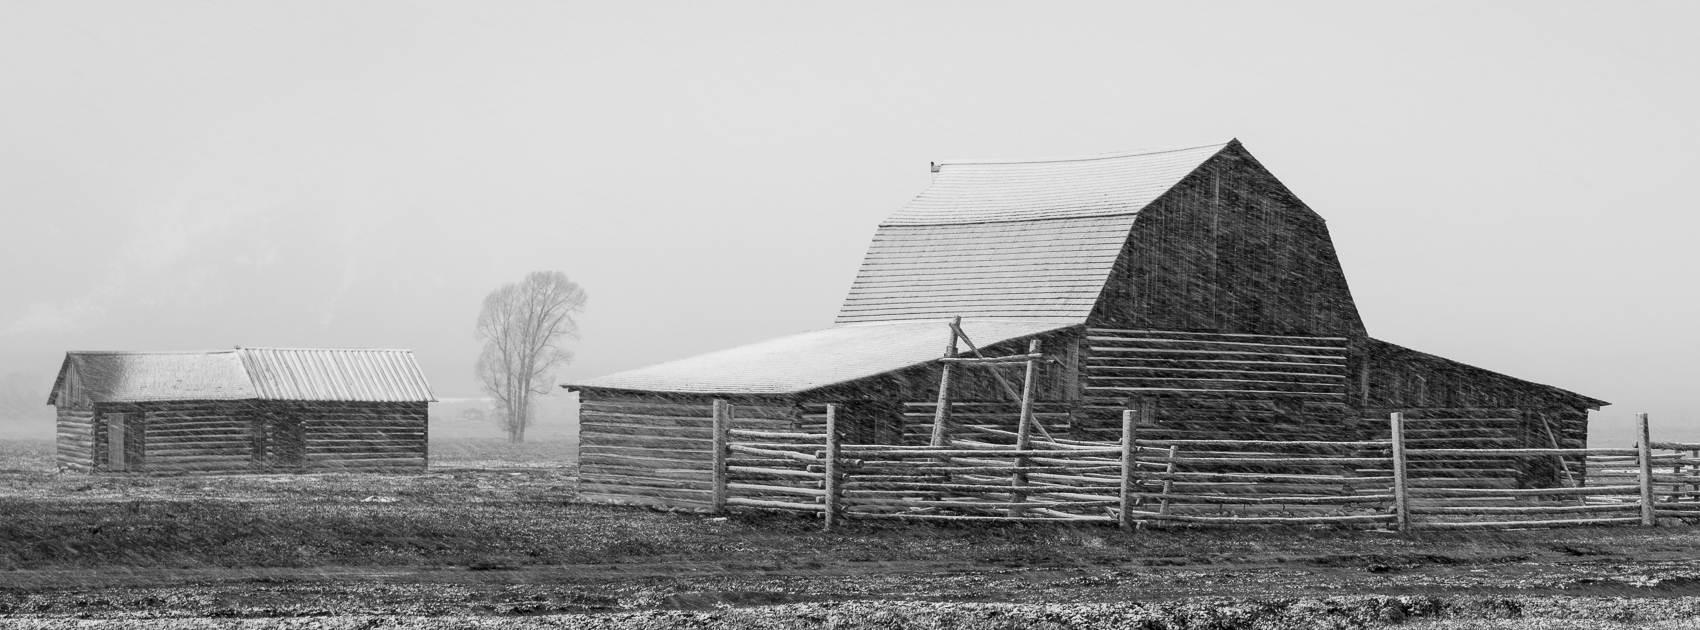 01-John Moulton Barn in Snow